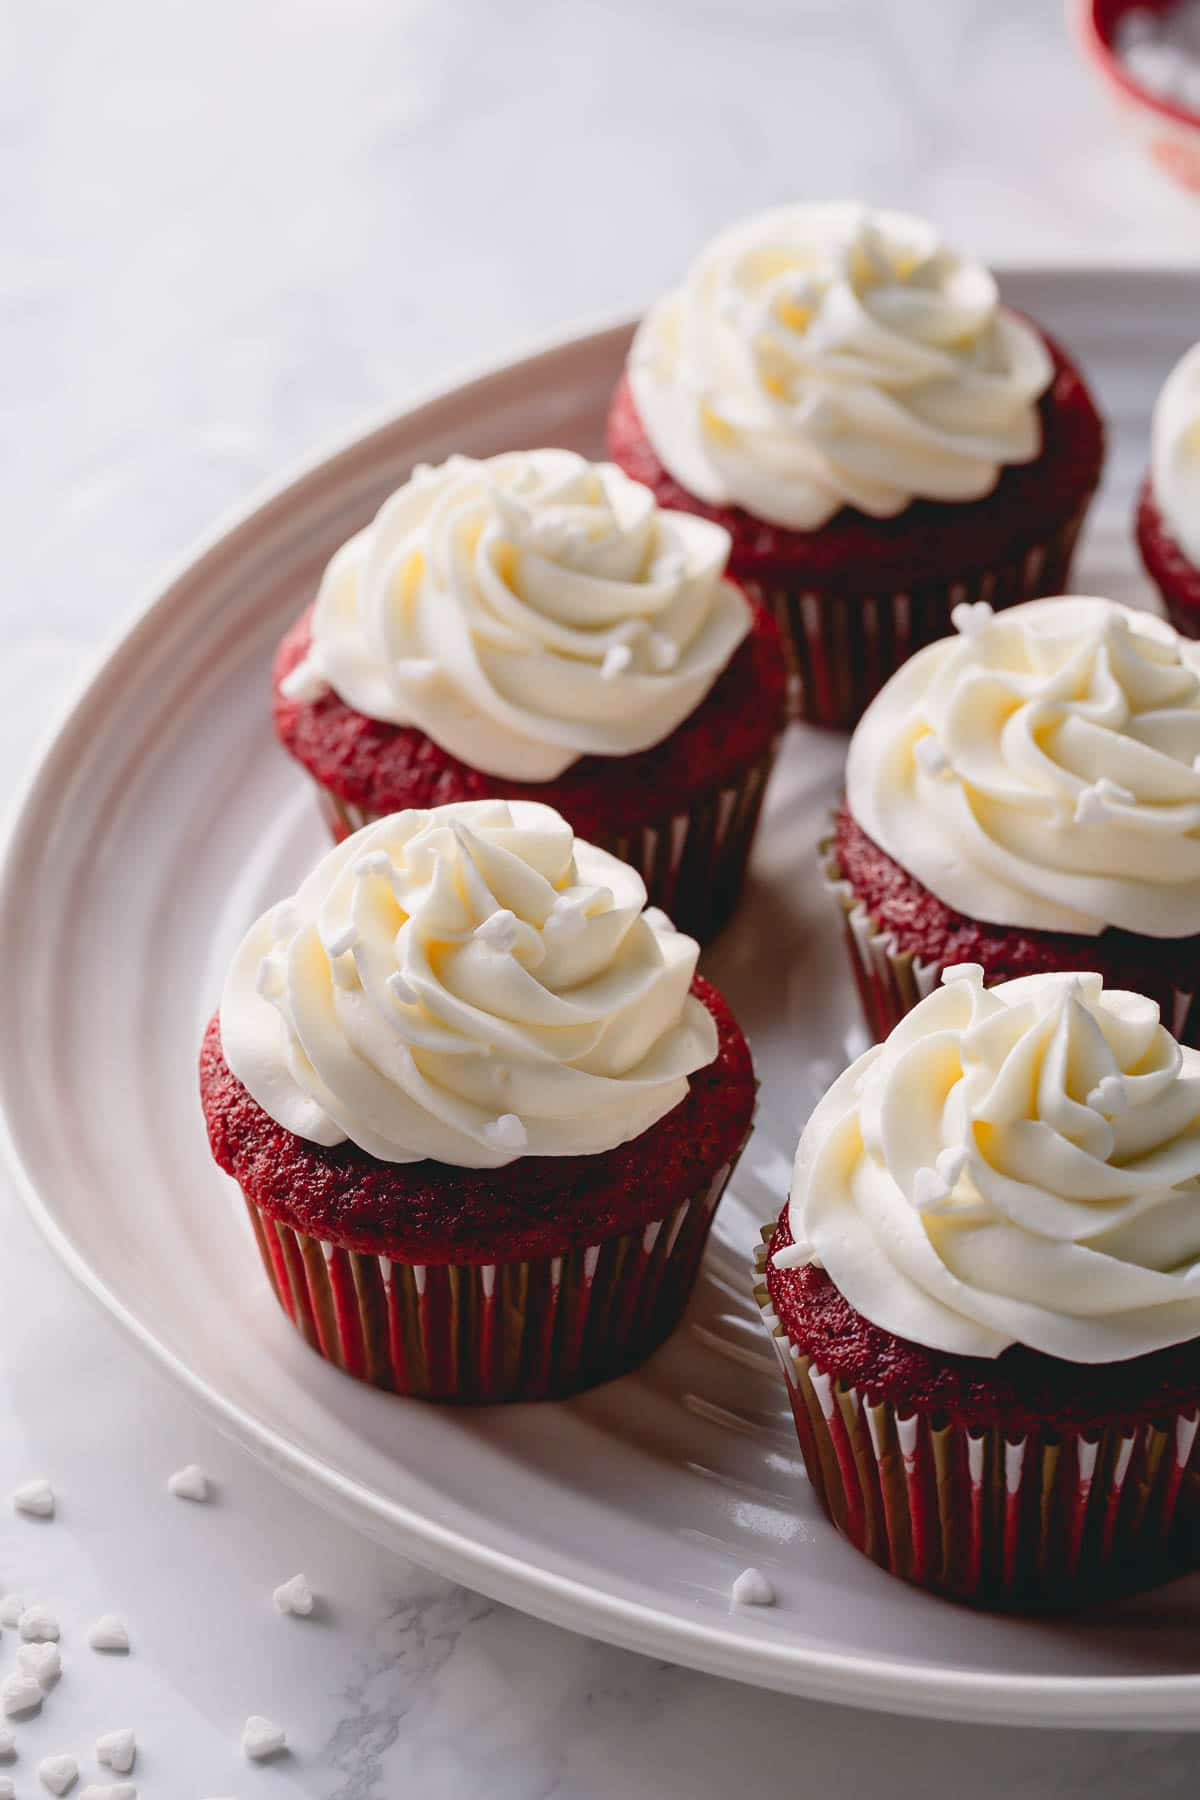 Half a dozen red velvet cupcakes frosted with cream cheese frosting